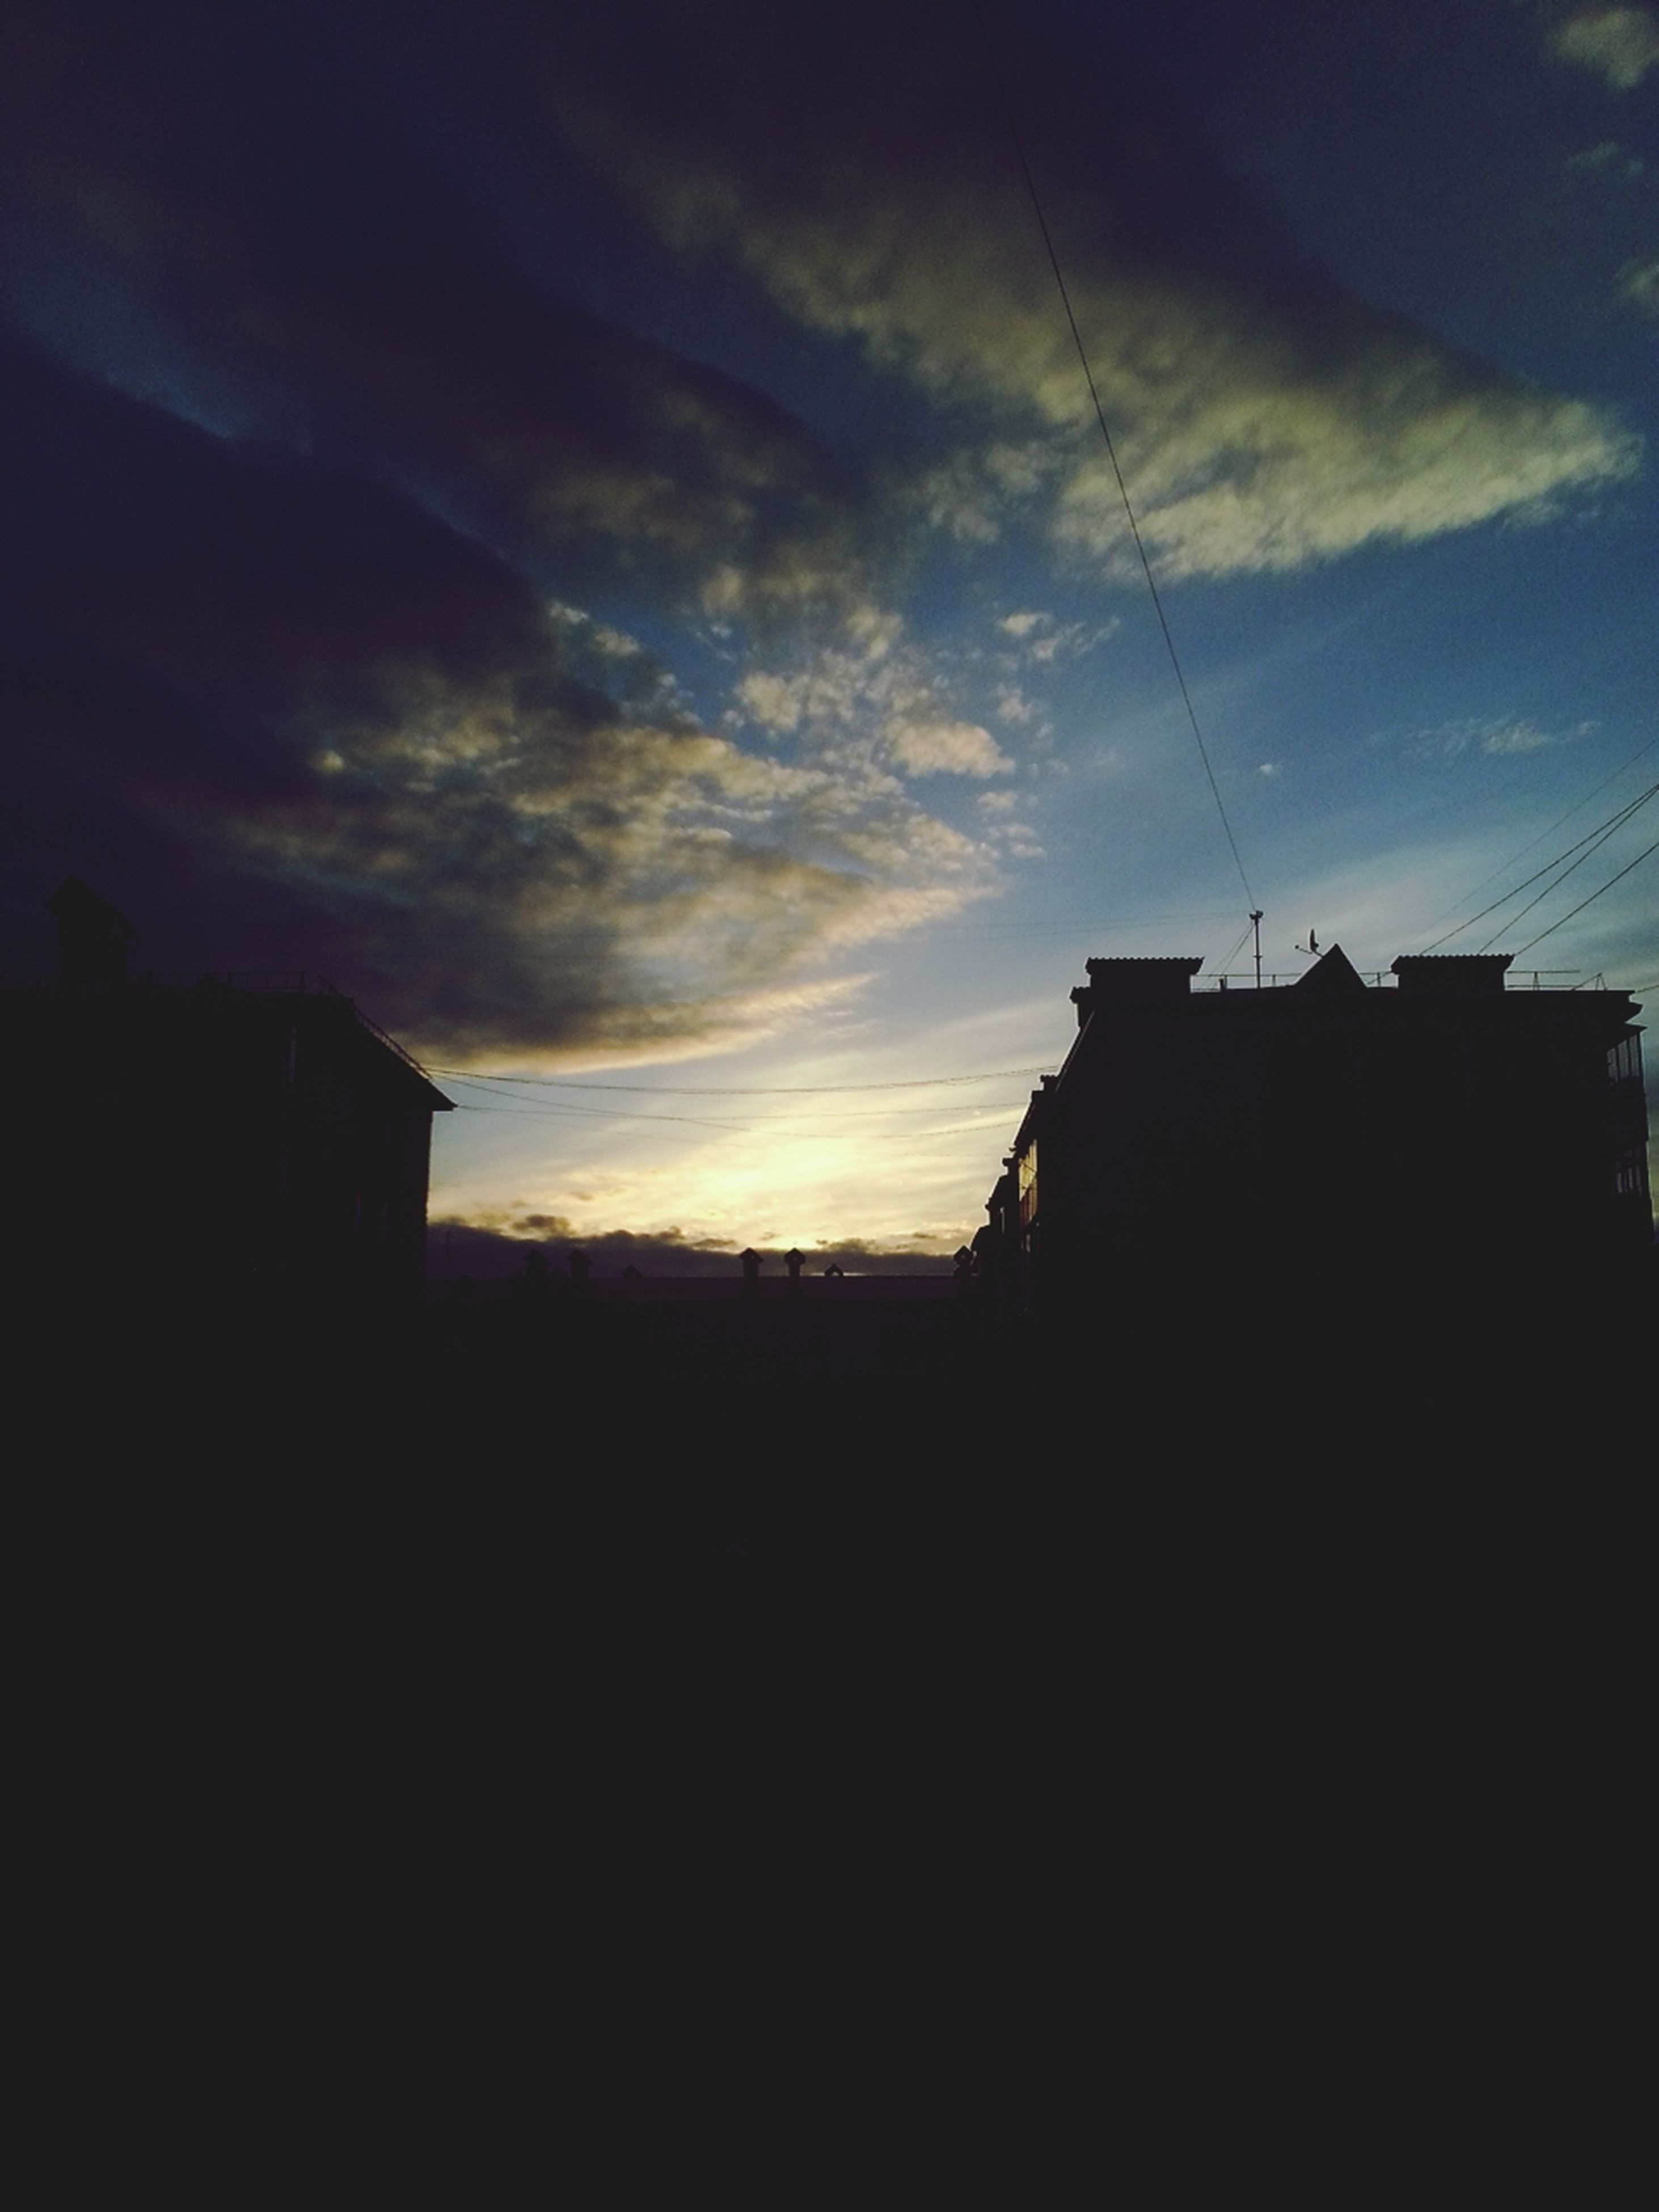 architecture, silhouette, building exterior, built structure, sky, sunset, cloud - sky, house, residential structure, cloud, dark, cloudy, building, dusk, residential building, low angle view, outdoors, nature, no people, dramatic sky